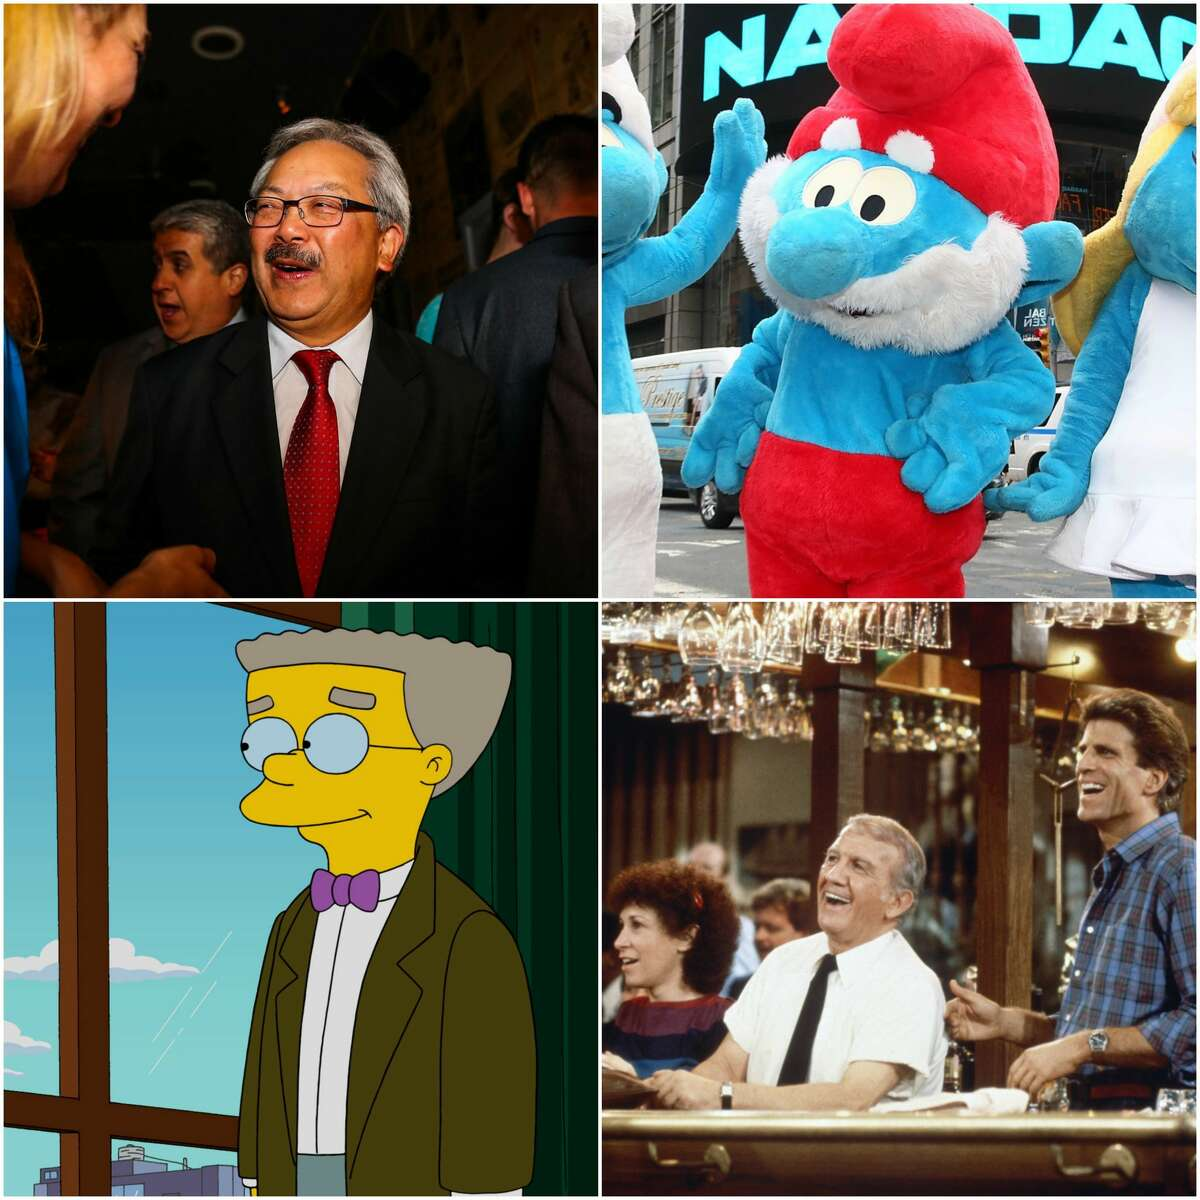 San Francisco Mayor Ed Lee: Papa Smurf, Coach from